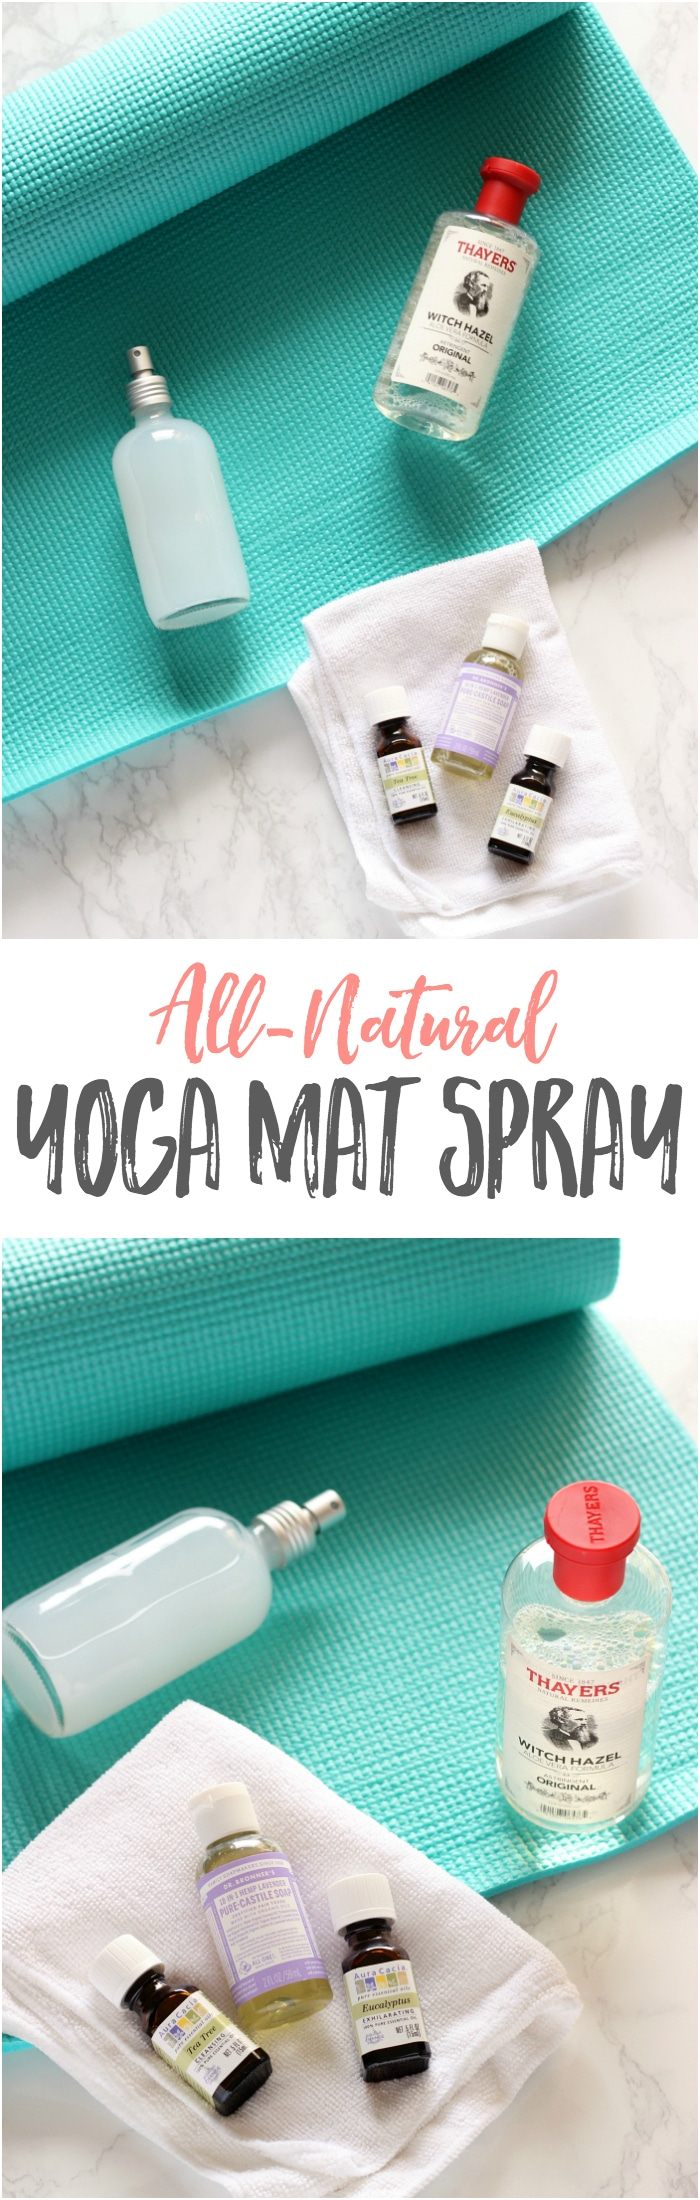 diy-yoga-mat-spray-pin